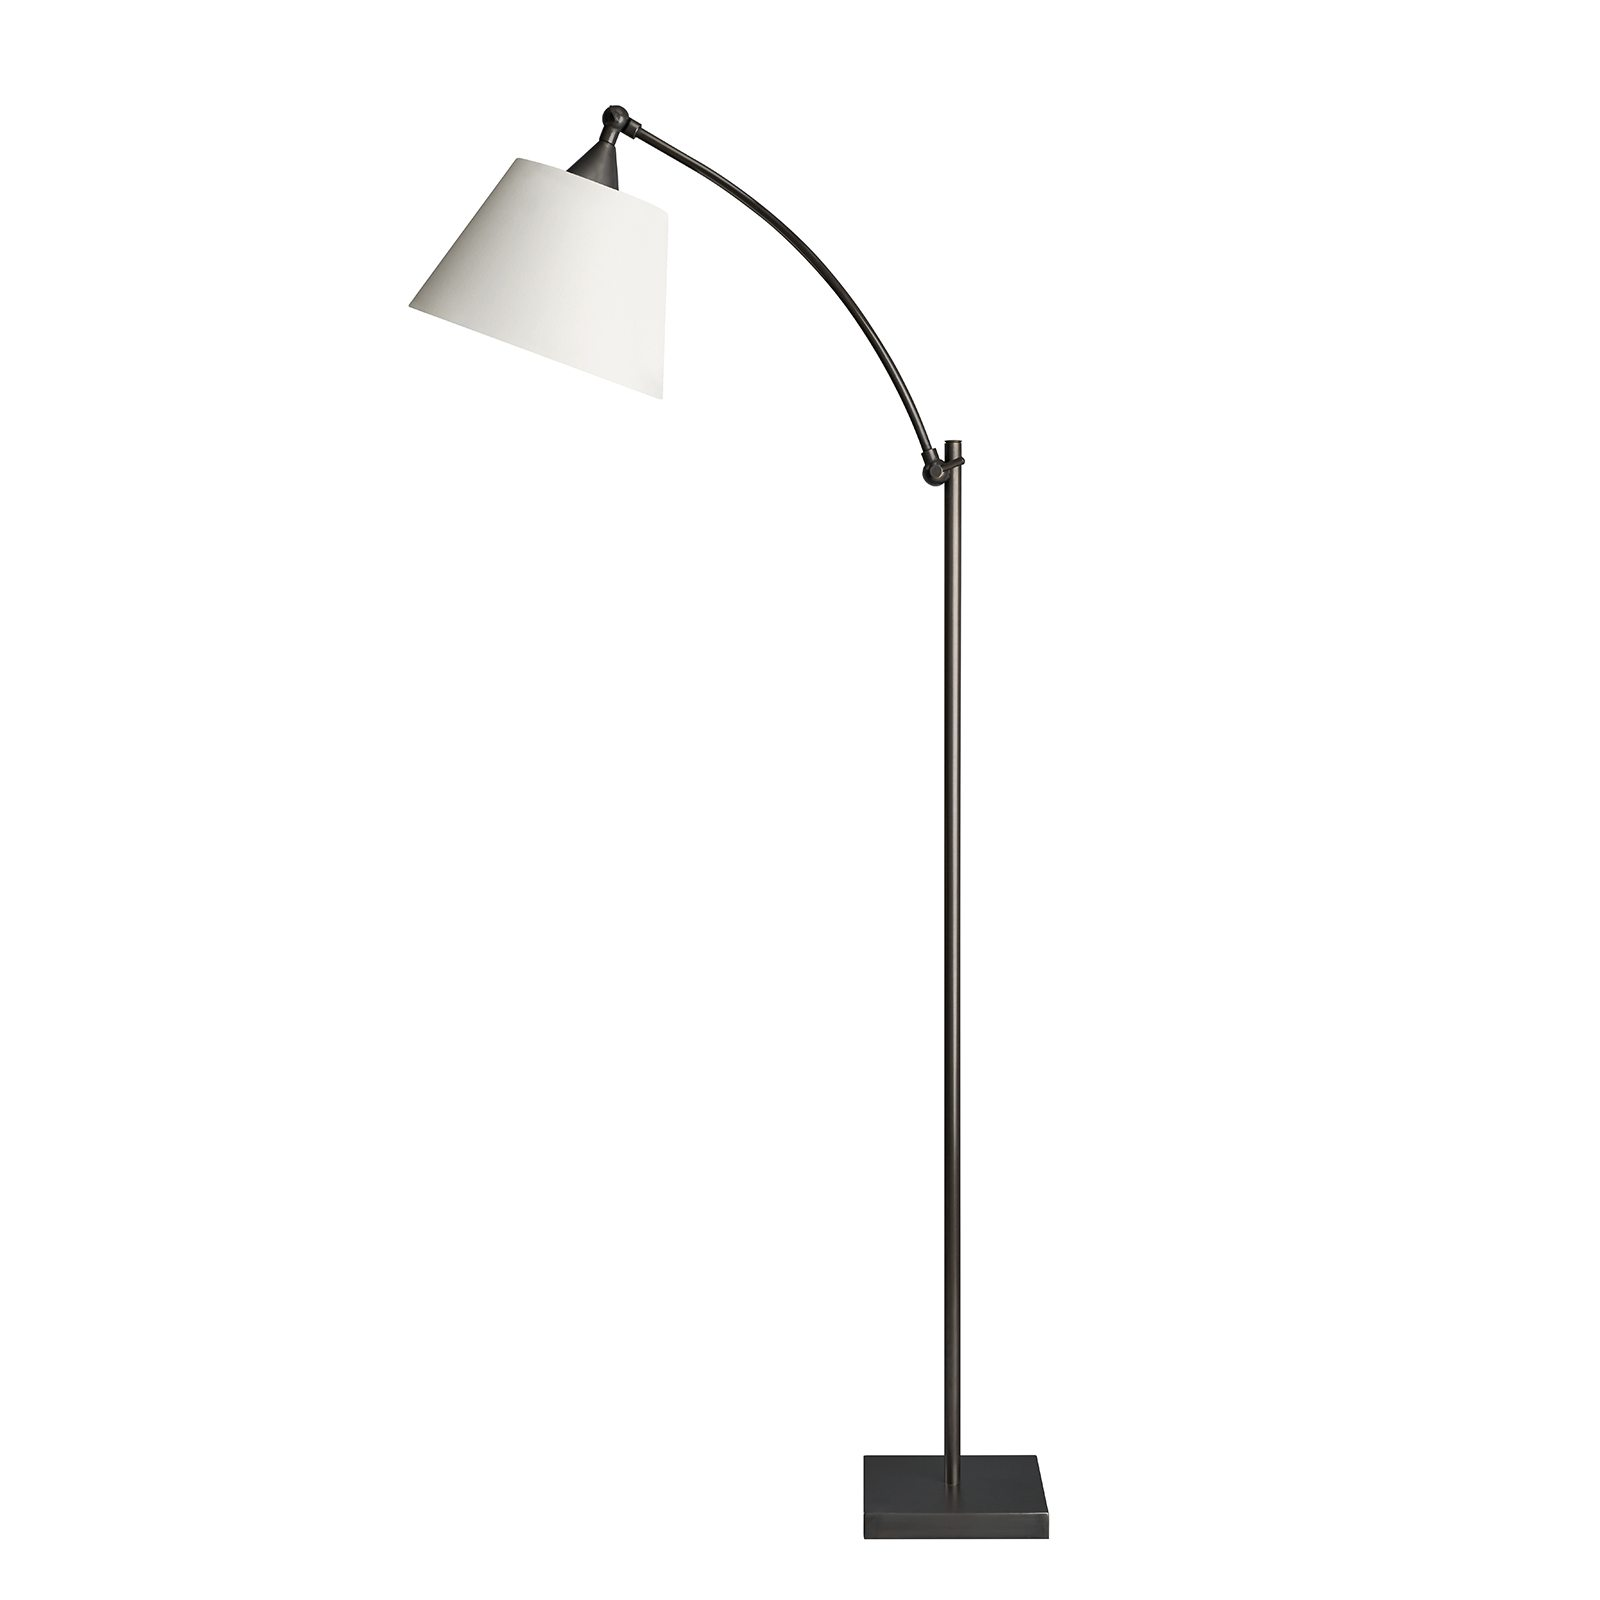 Gallo Floor Lamp by Bonham & Bonham